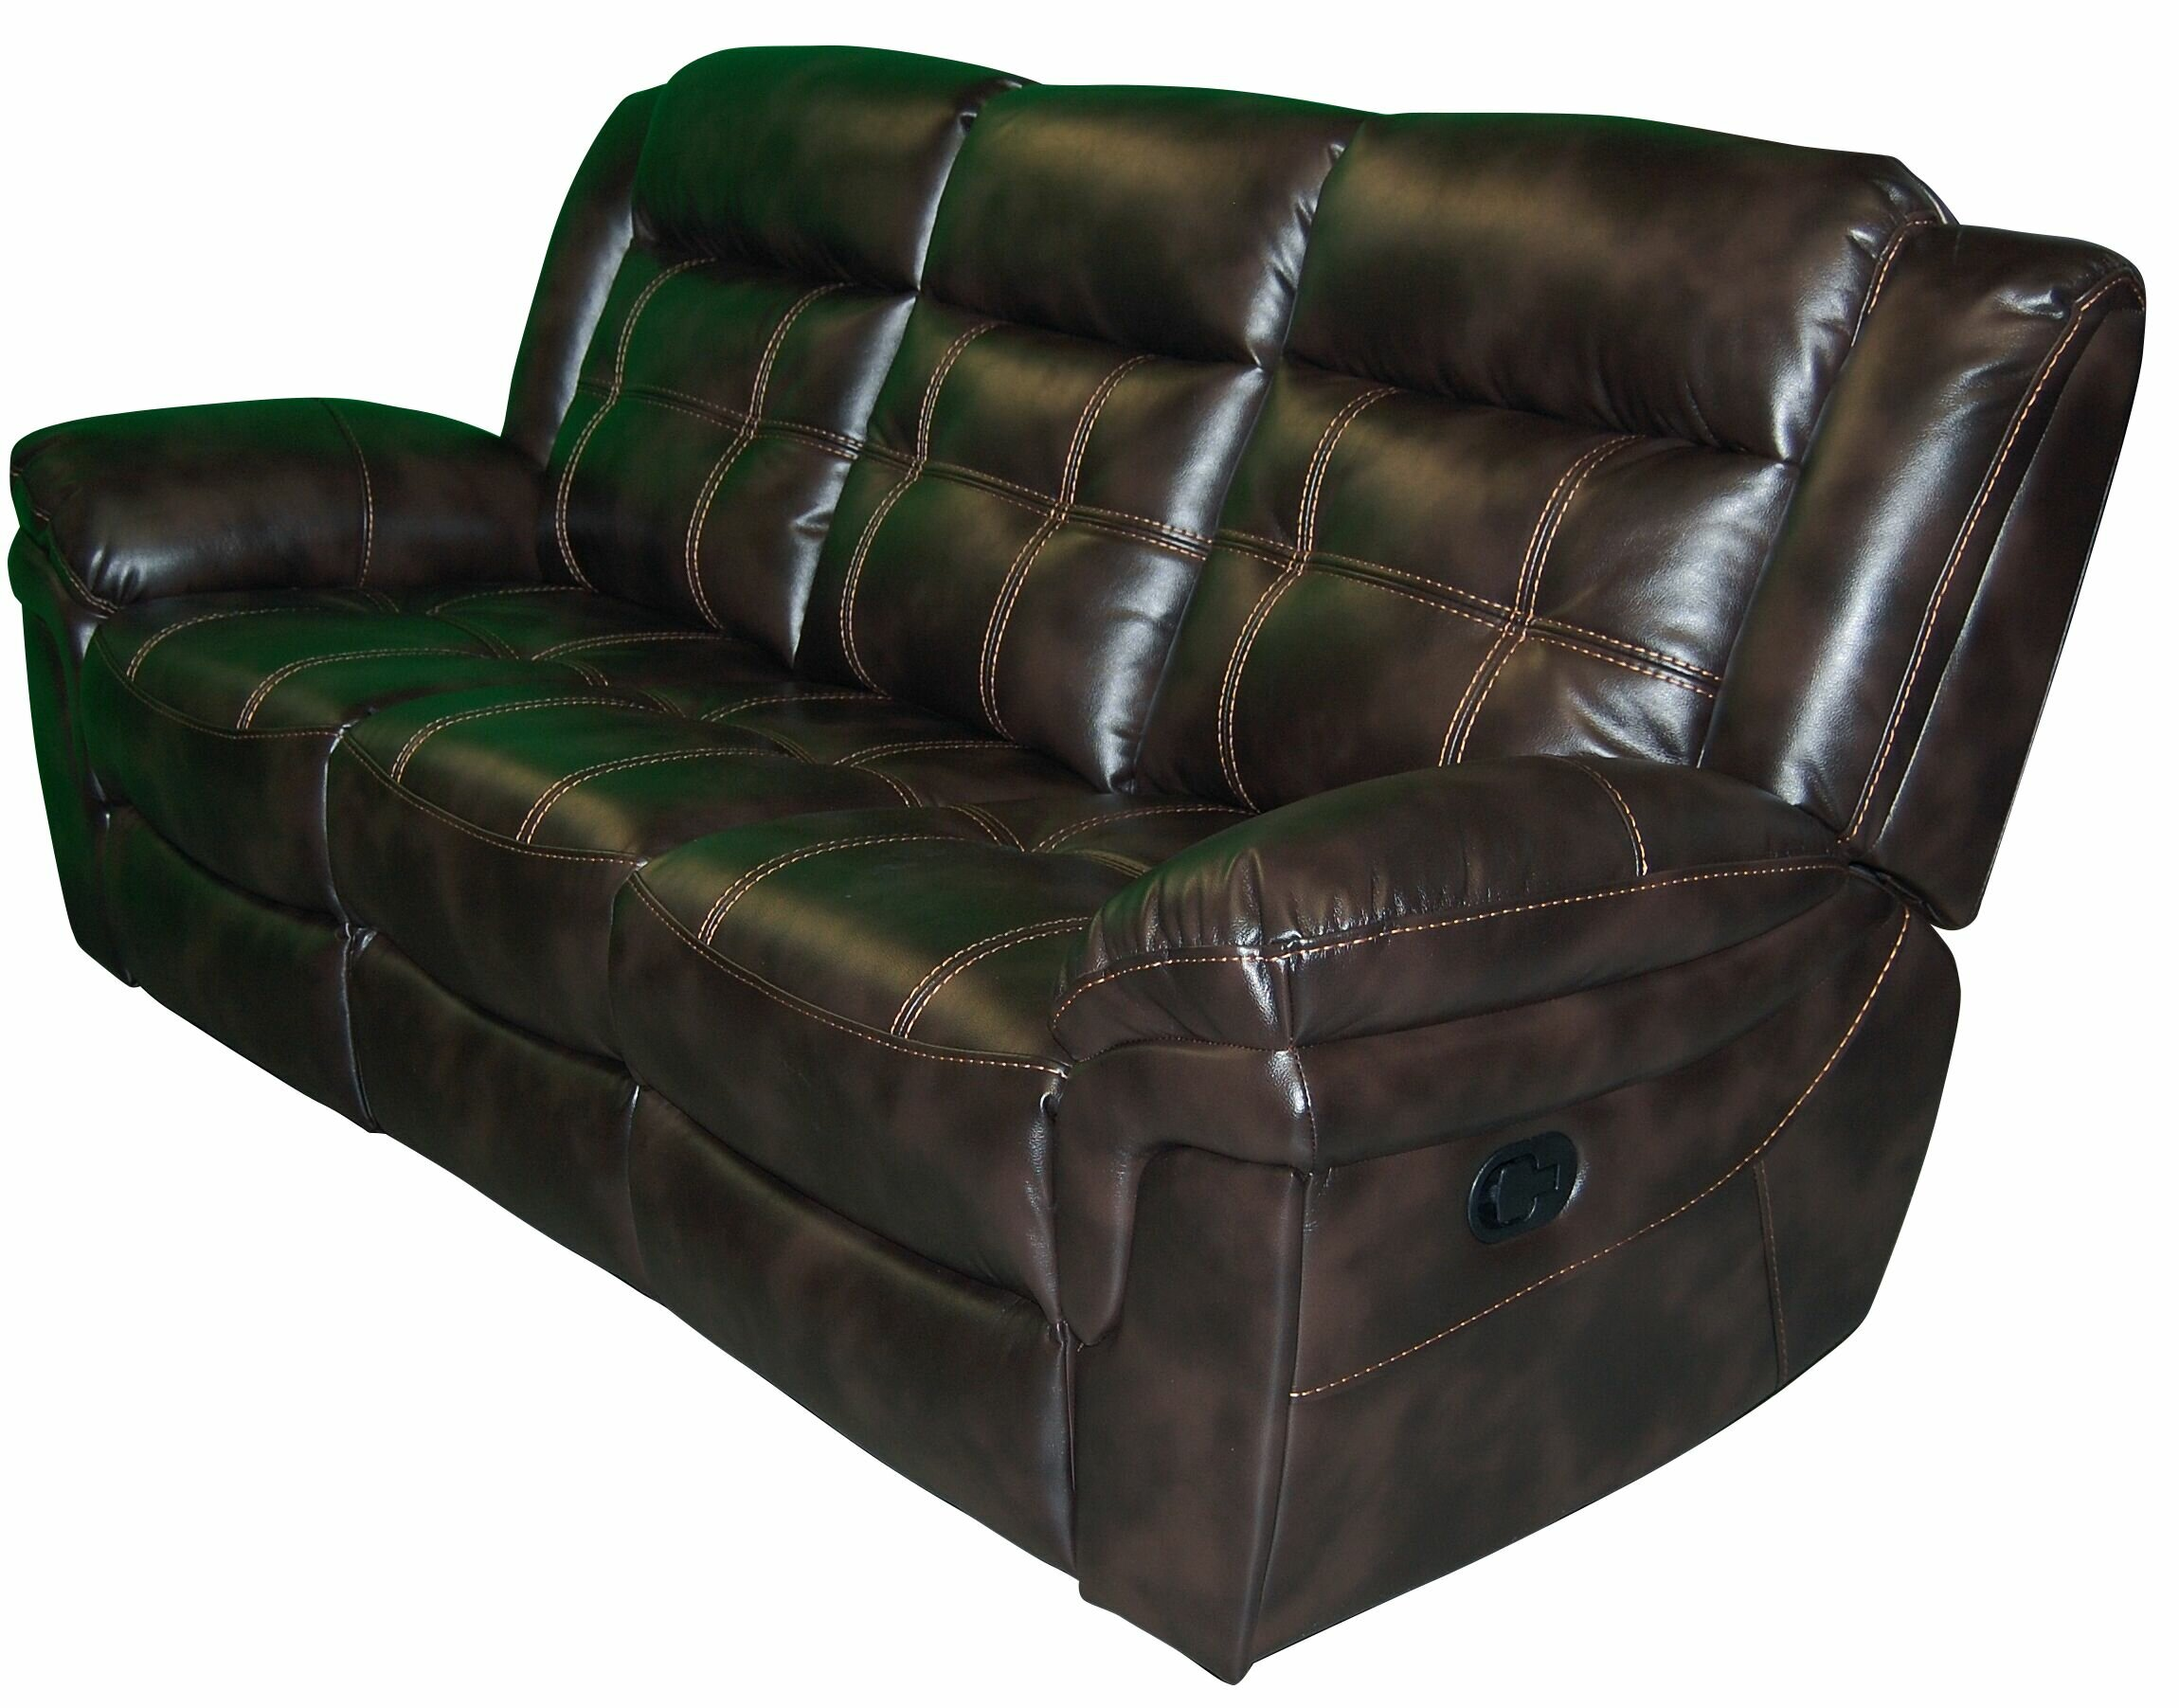 Admirable Stanley Reclining Sofa Andrewgaddart Wooden Chair Designs For Living Room Andrewgaddartcom